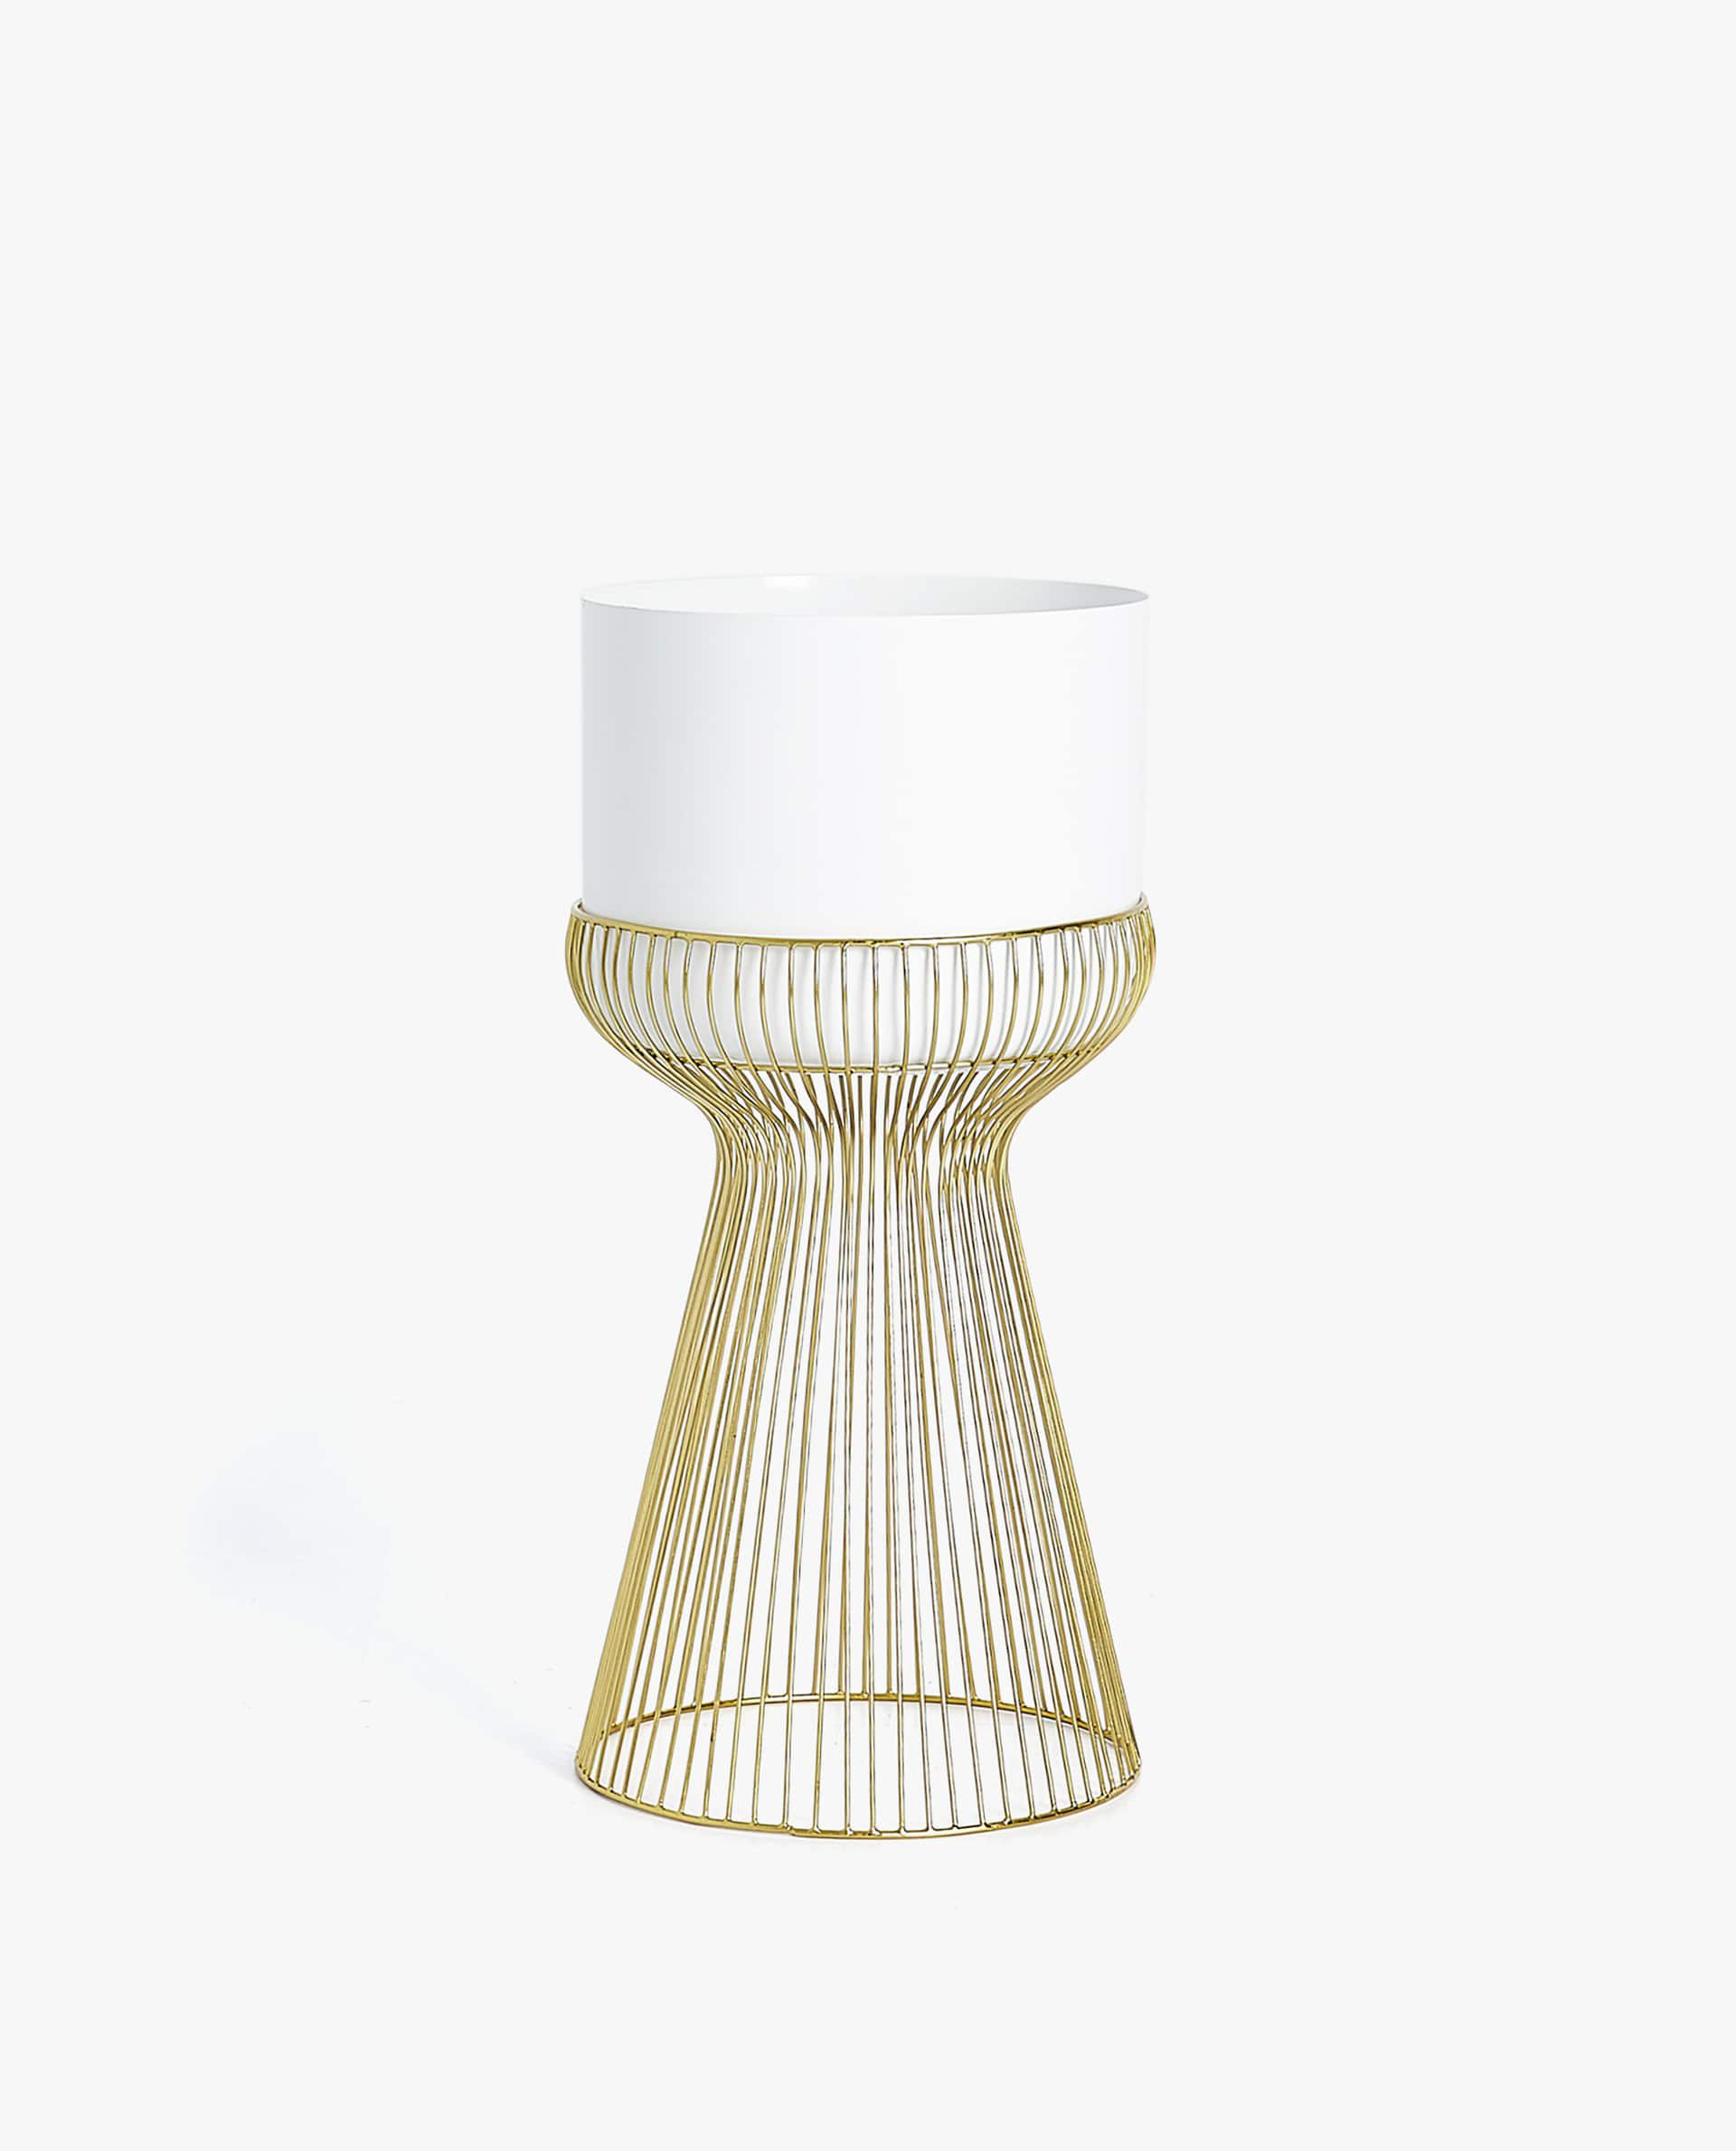 White Flowerpot with Gold Wire Stand